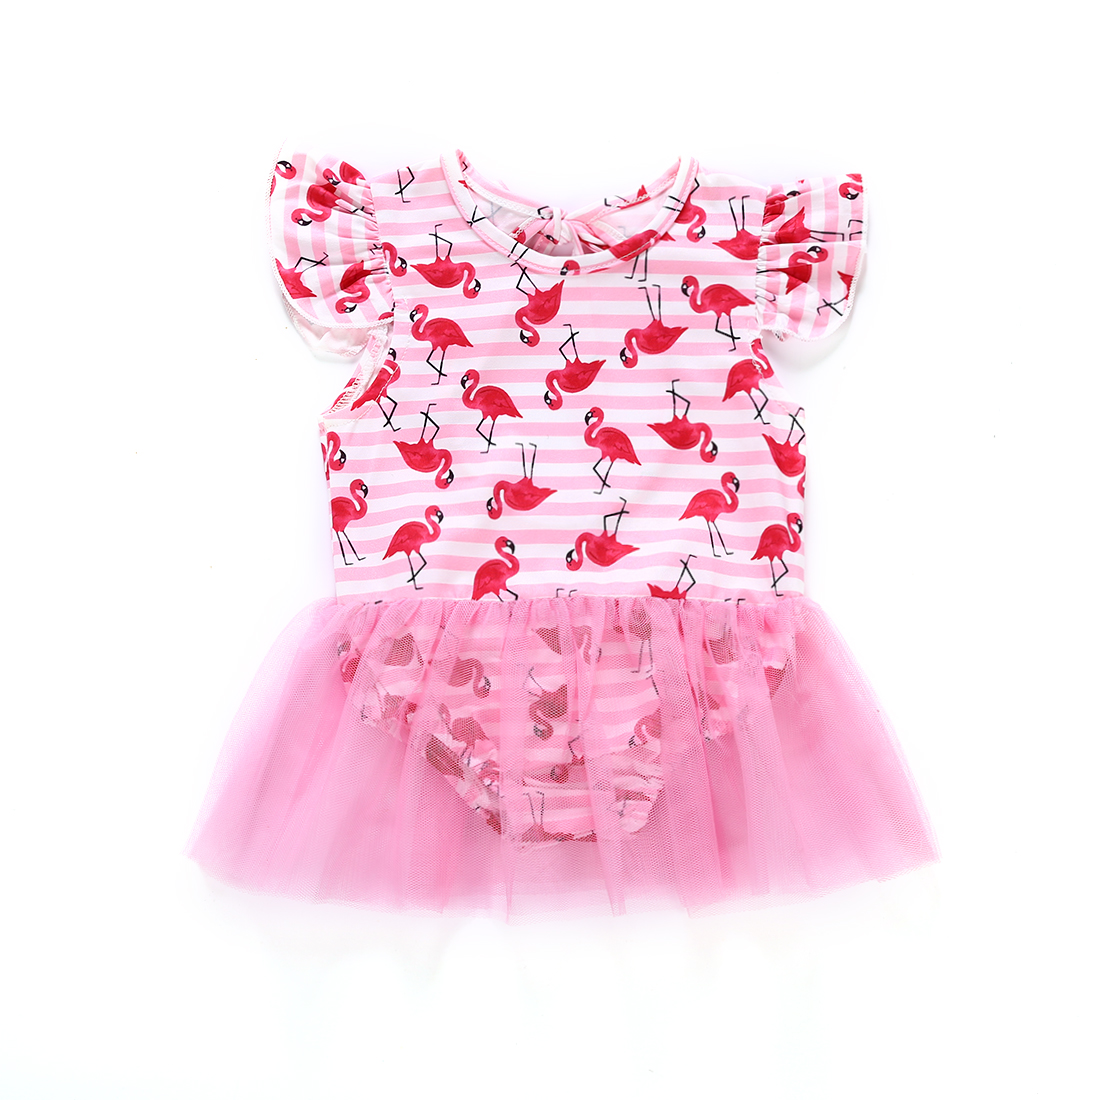 Cute Newborn Baby Girl Swimsuit Cartoon Red Birds Swimwear Bandage Bathing Suit Backless Tutu Beachwear Toddler Swimming Clothes